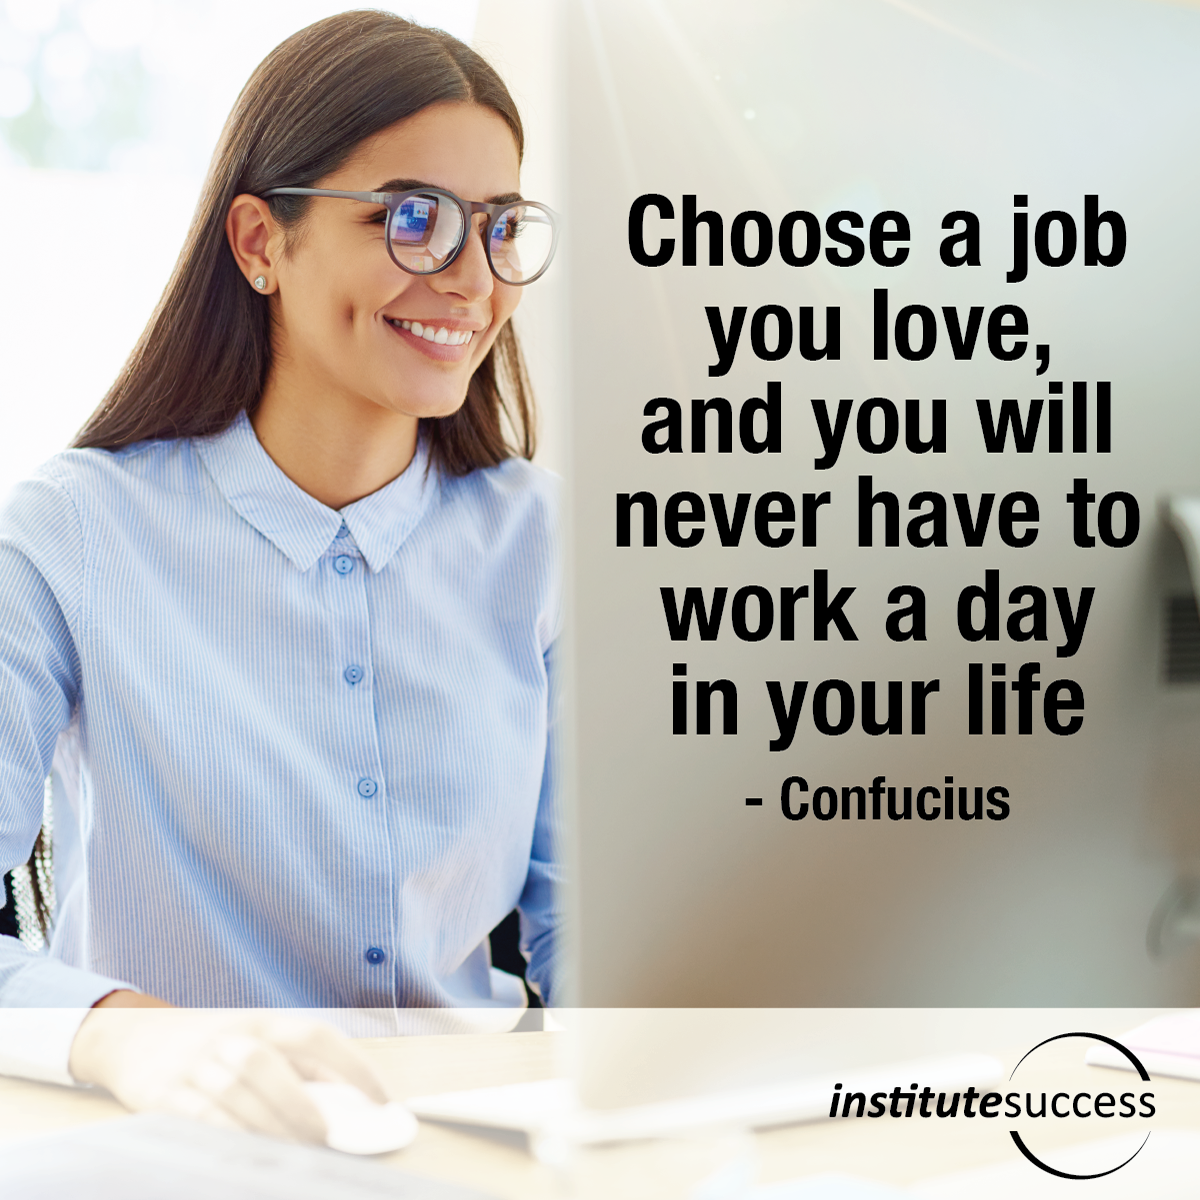 Choose a job you love, and you will never have to work a day in your life – Confucius